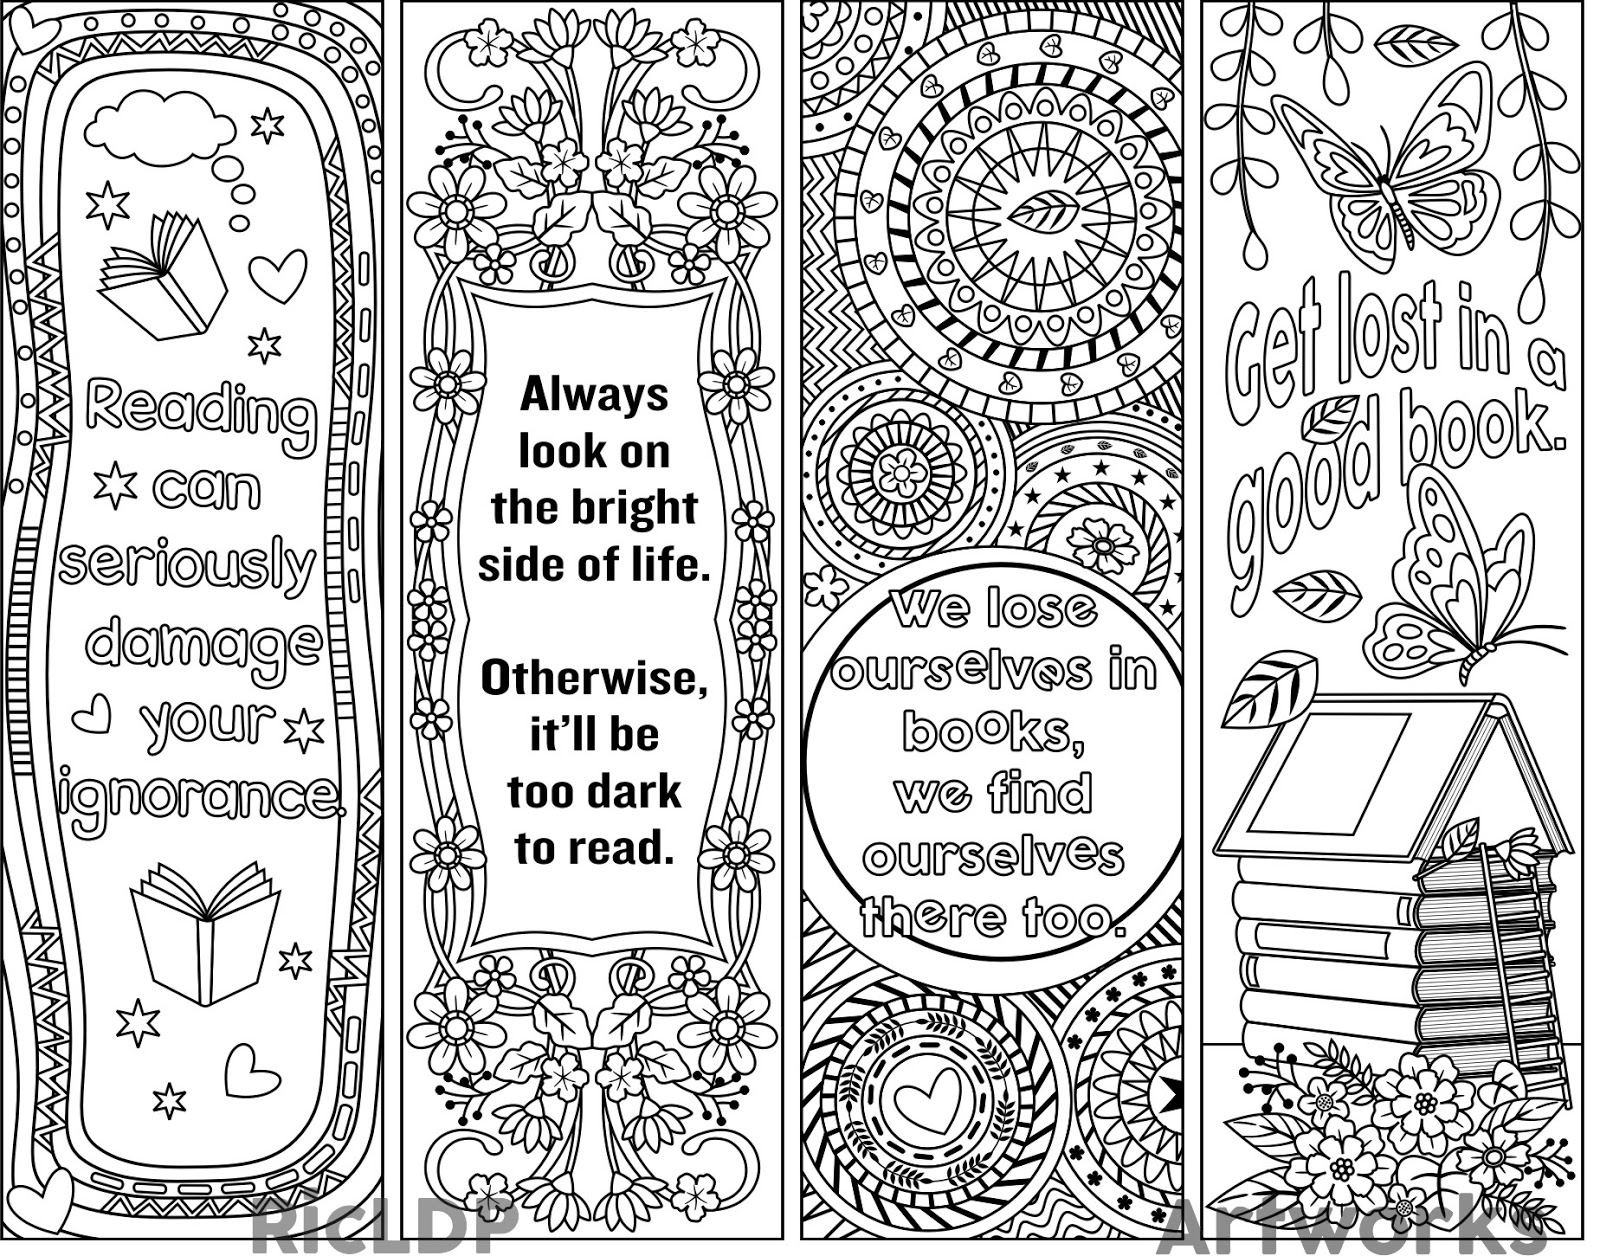 ricldp artworks printable coloring bookmarks. Black Bedroom Furniture Sets. Home Design Ideas